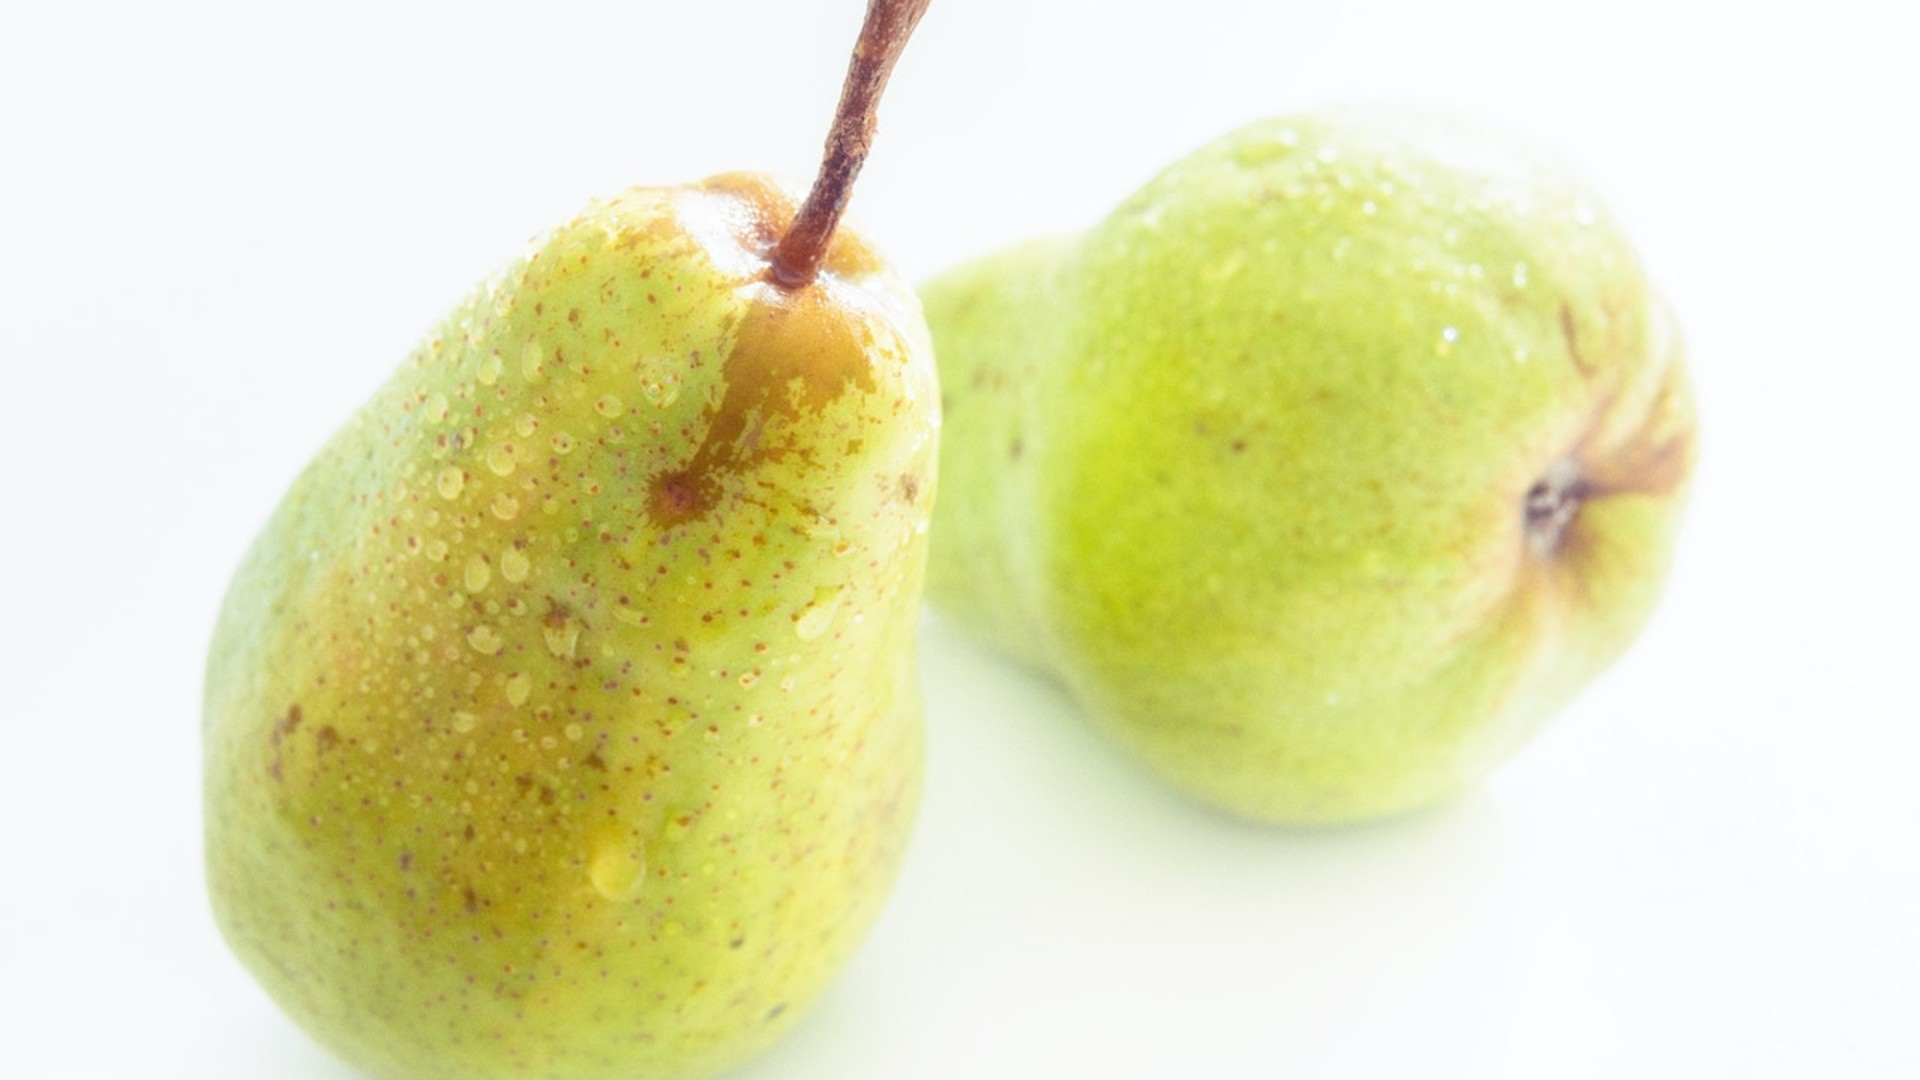 Pear Harvest Set to Begin in Early July